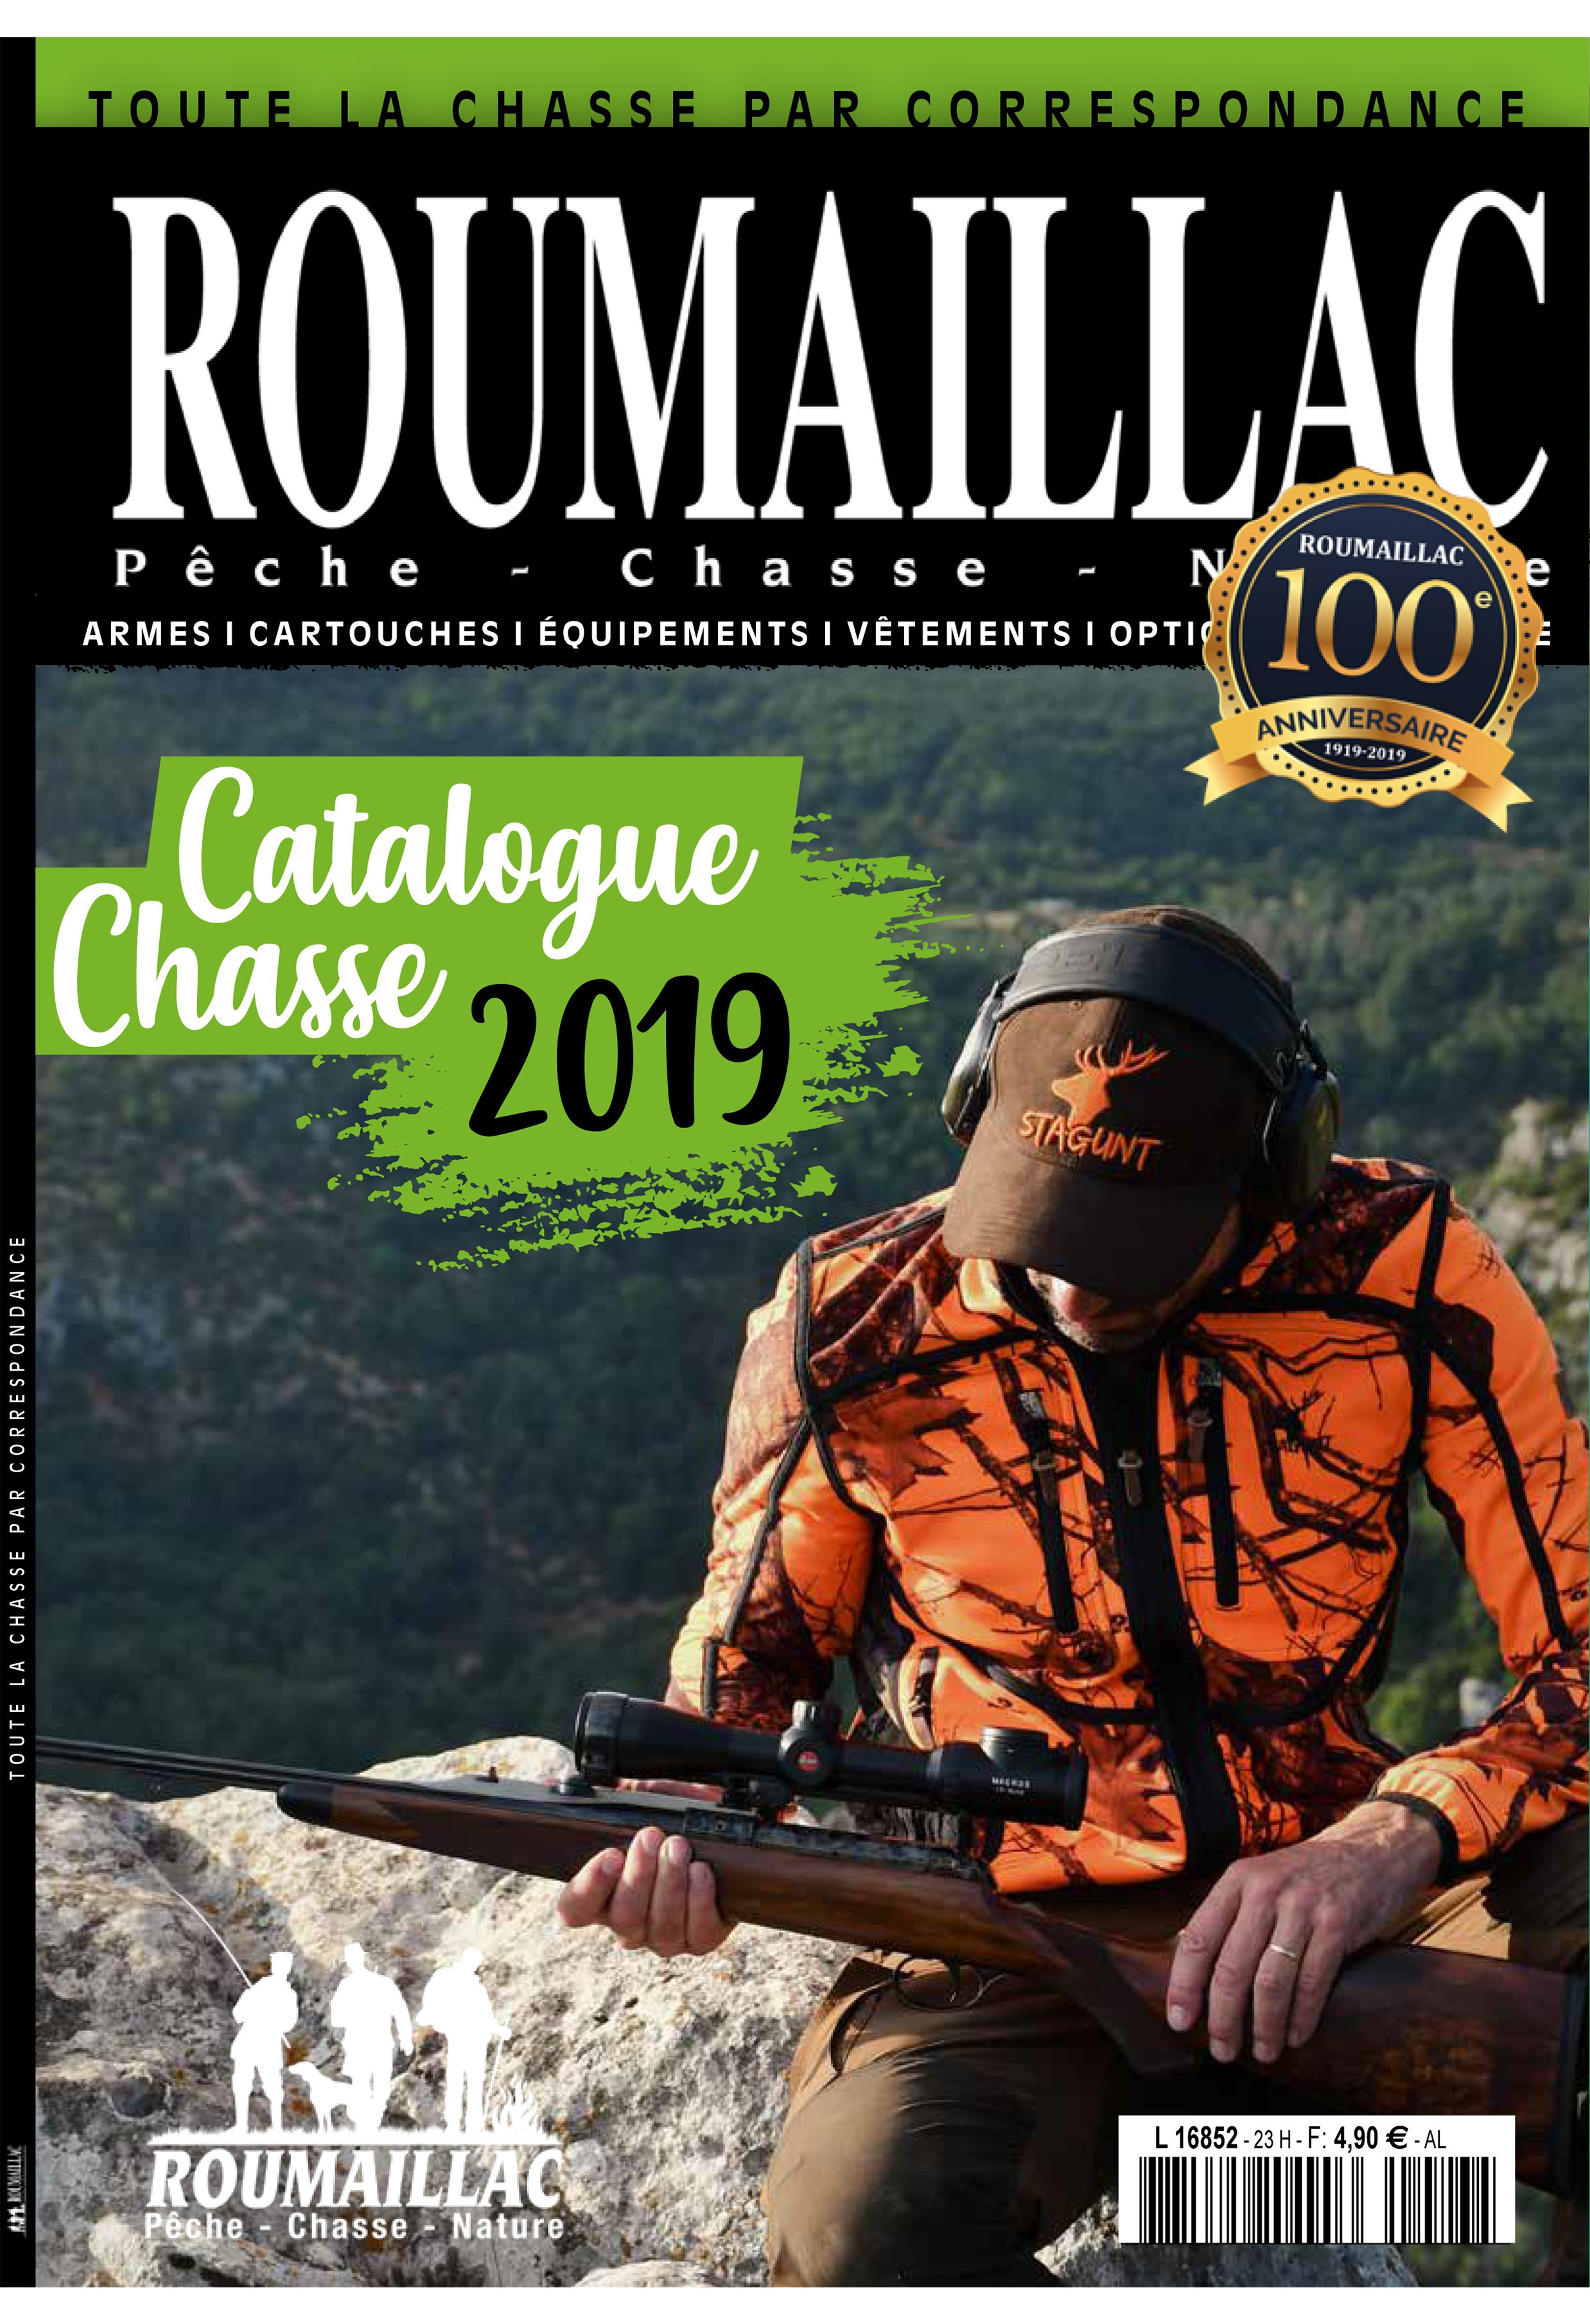 Catalogue chasse 2019